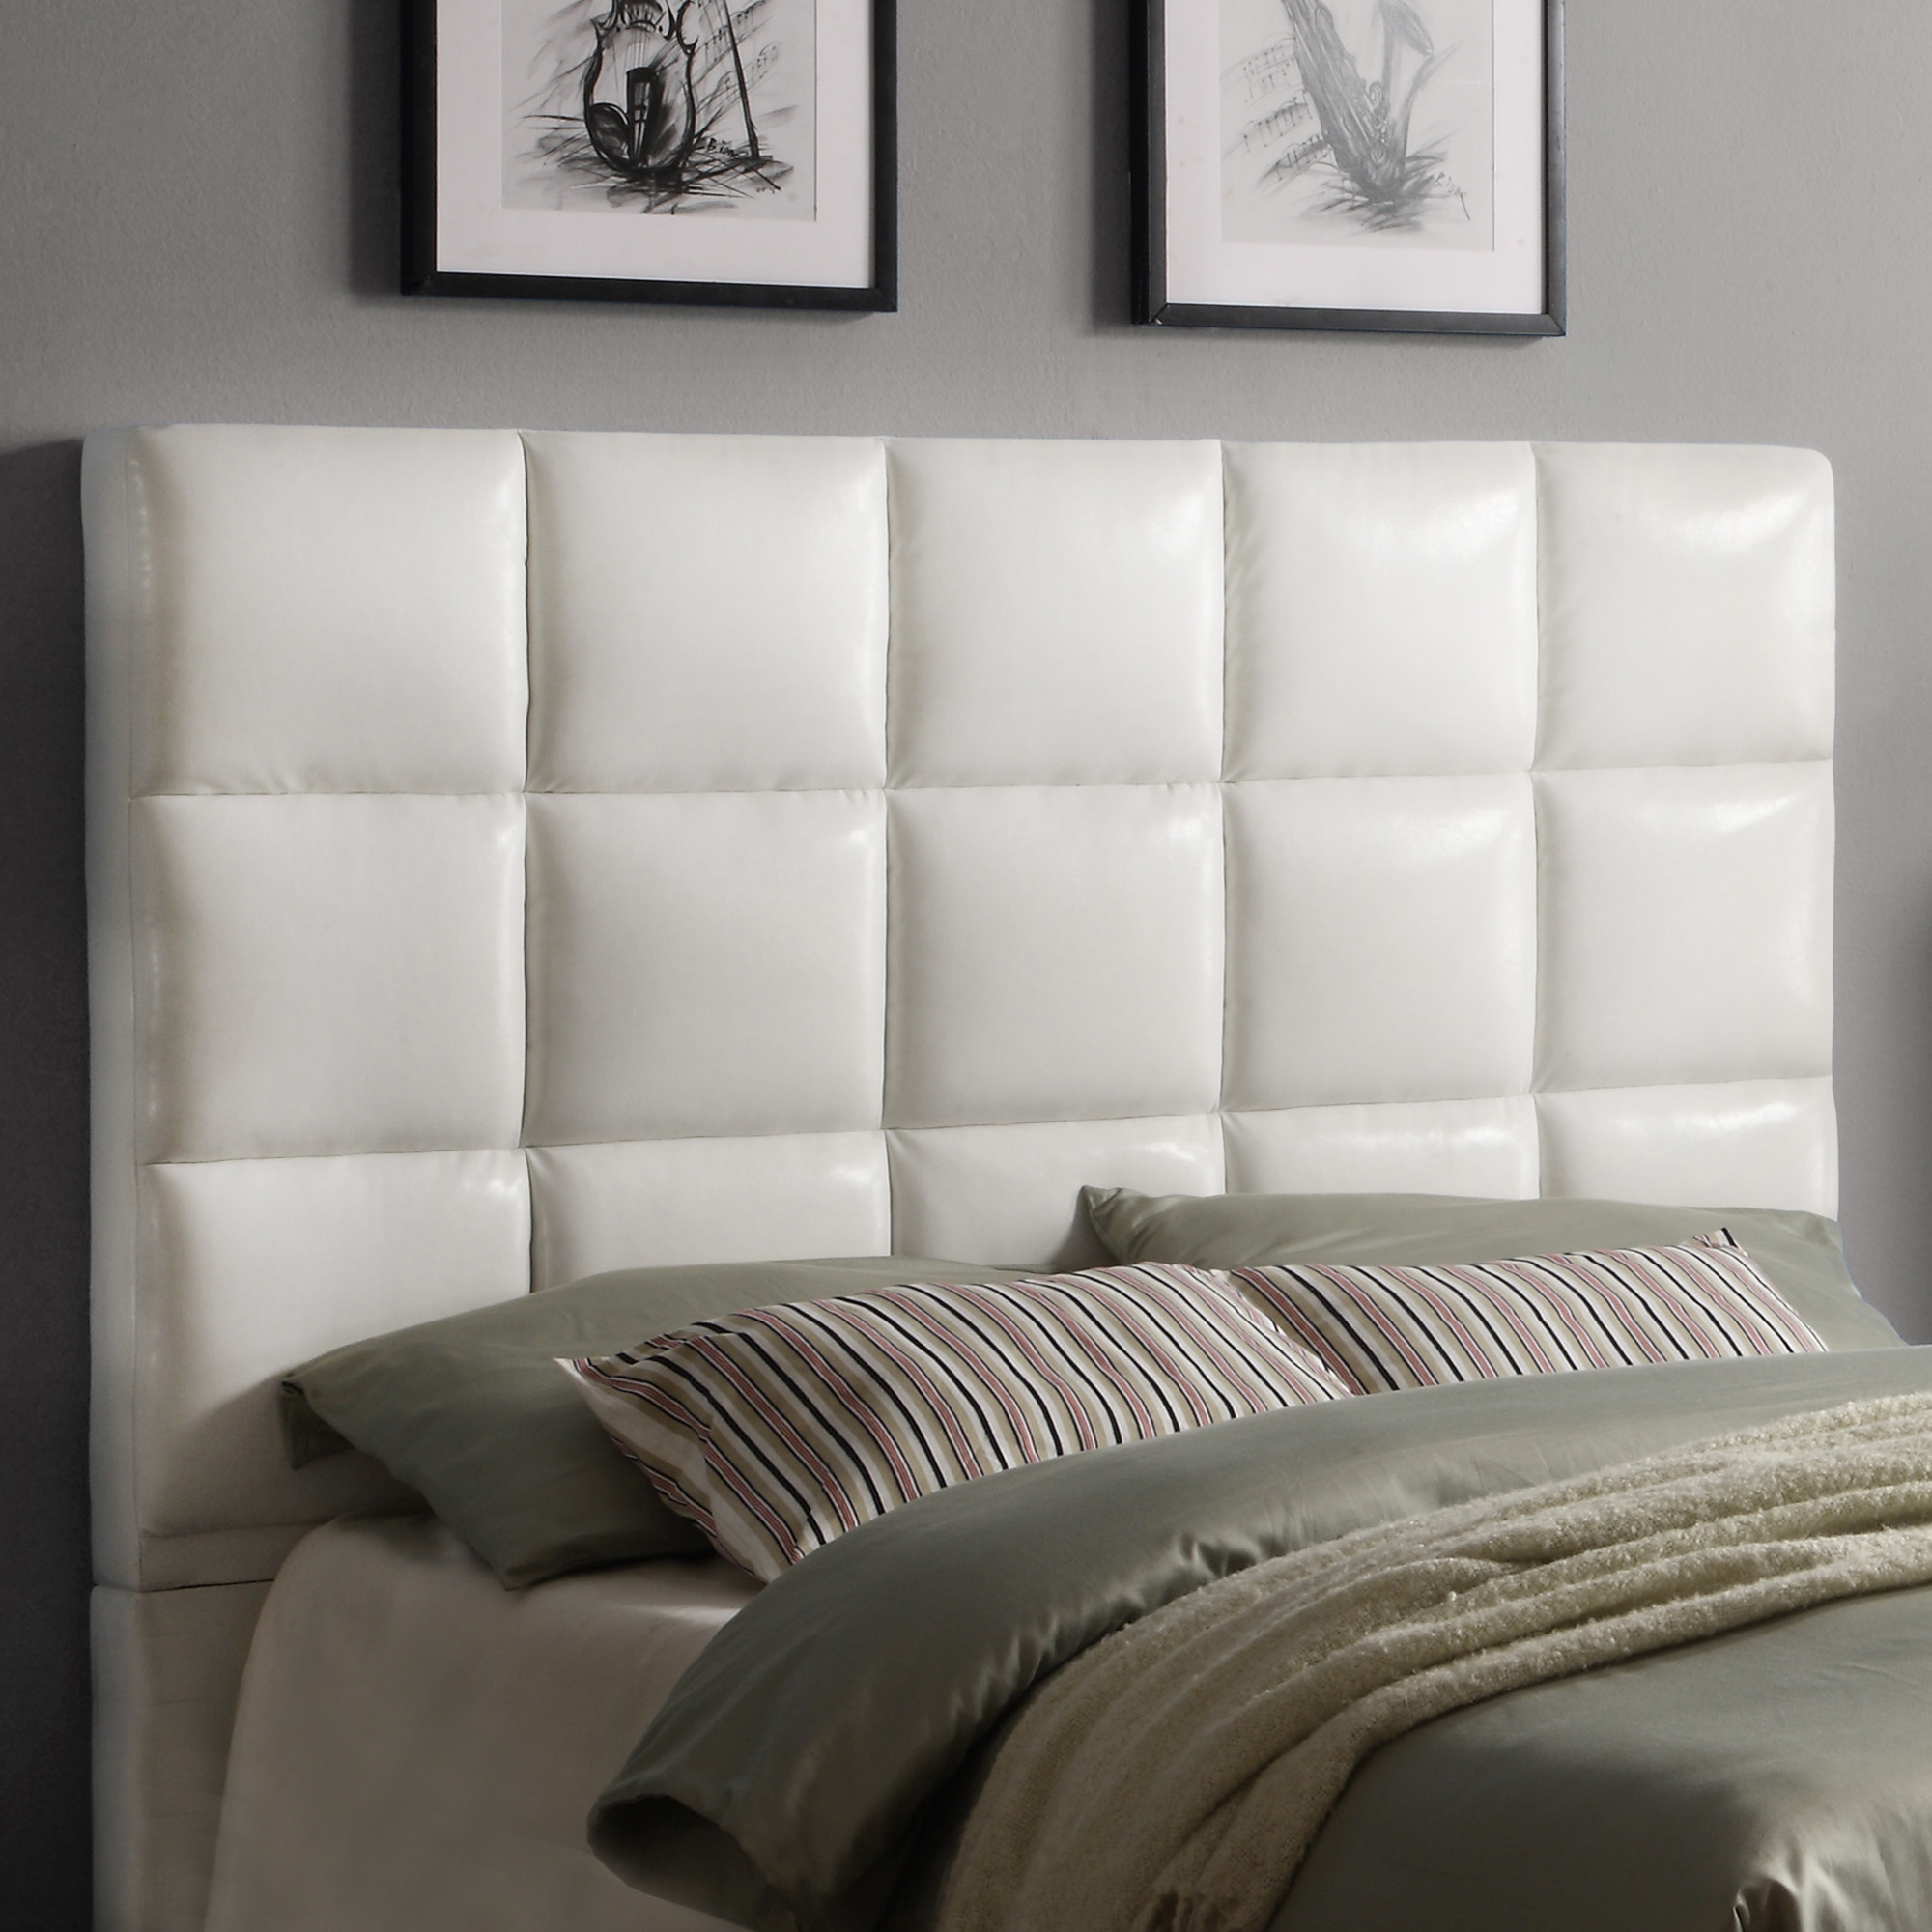 Weston Home Curtis Queen Tufted Headboard, Multiple Colors